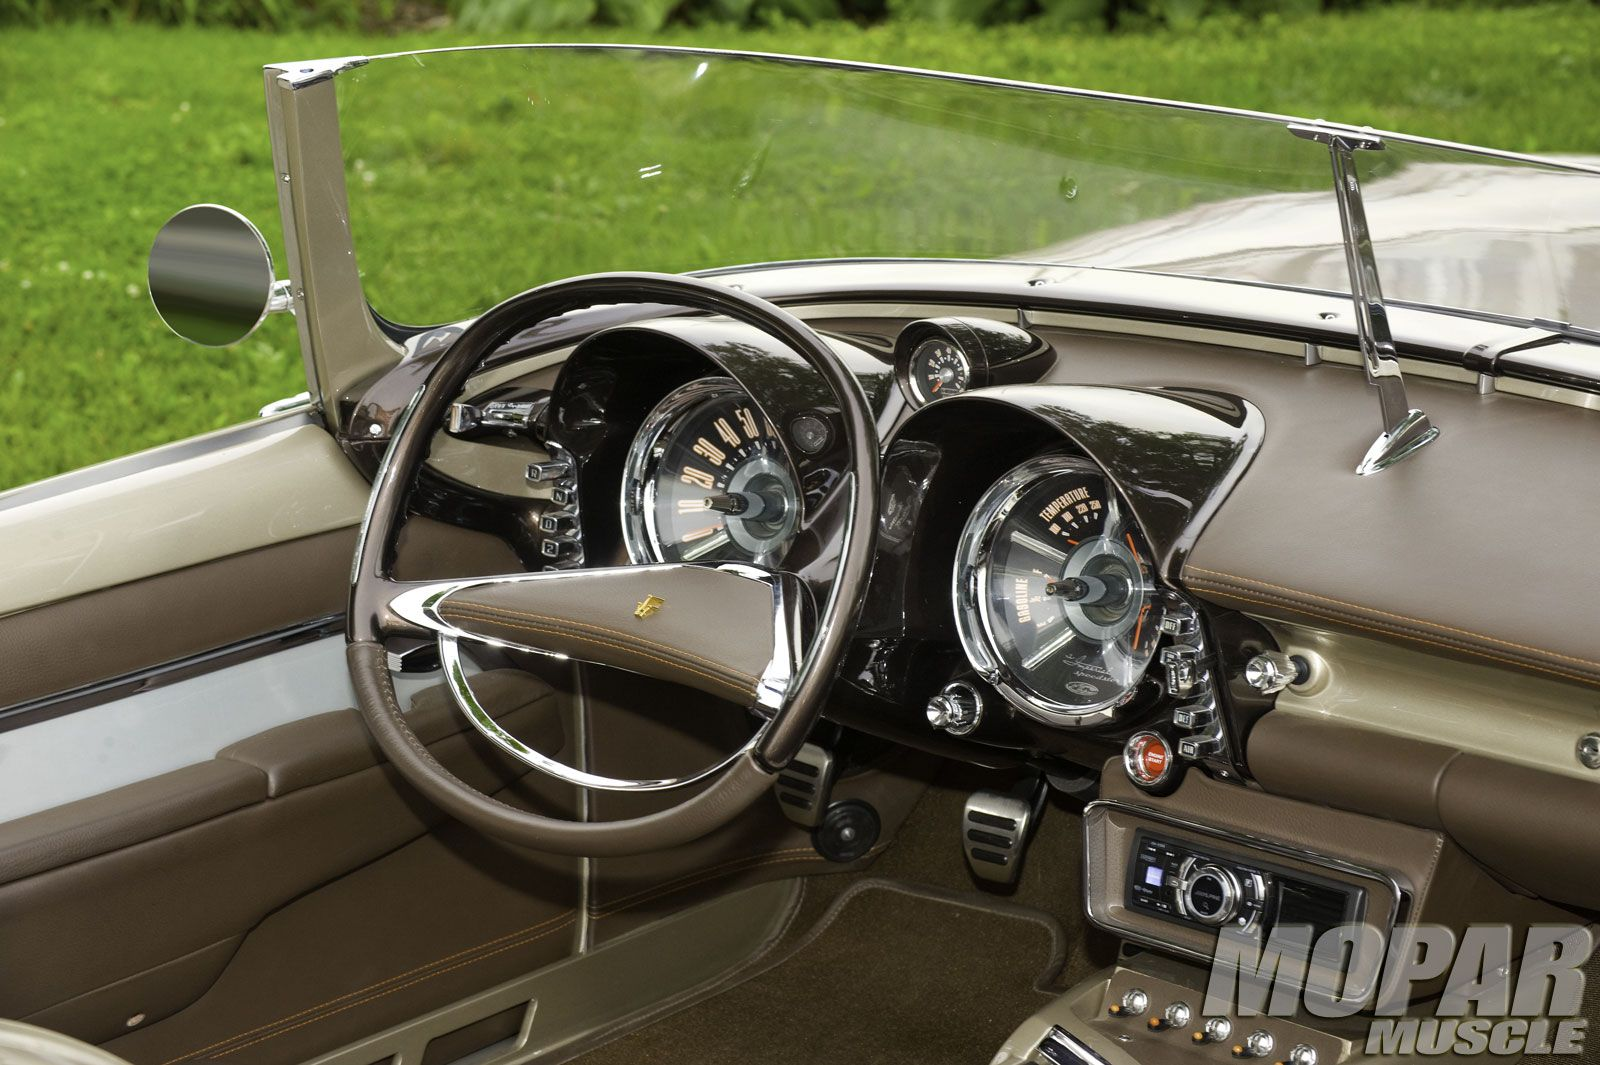 1956 chrysler imperial interior images - 1959 Imperial Speedster Exclusive Photos Hot Rod Network